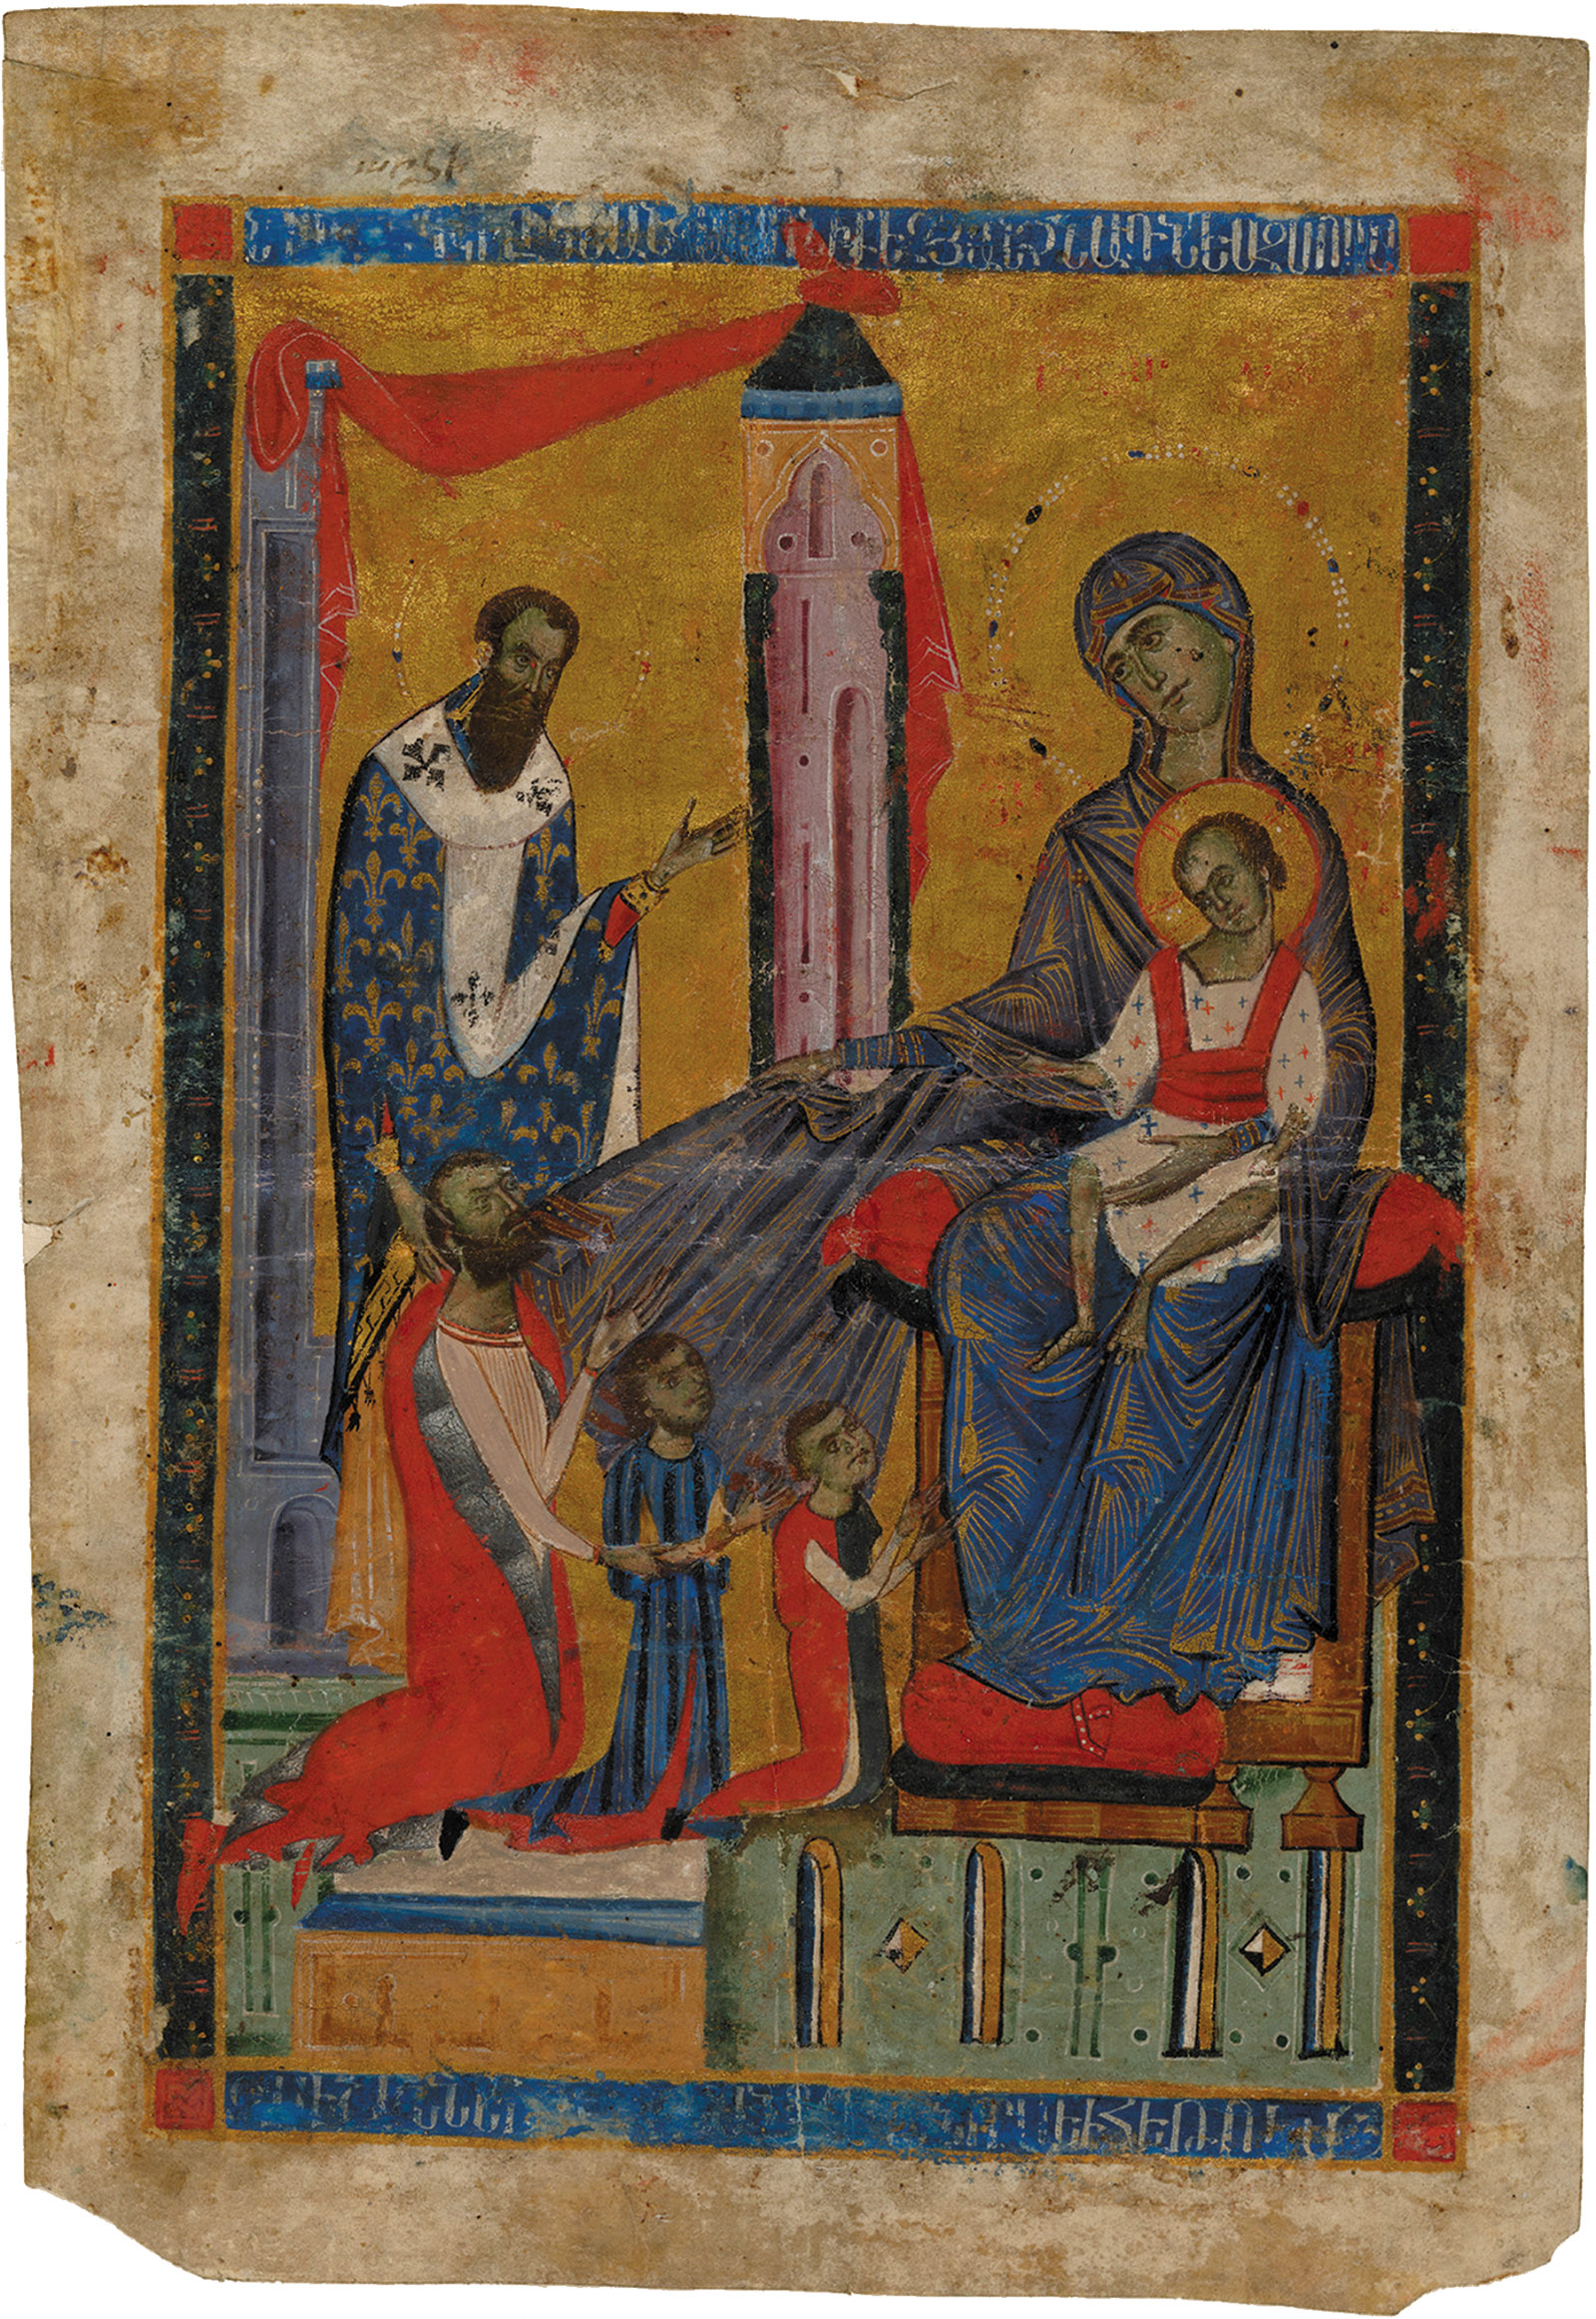 Archbishop John presenting Marshal Oshin and his two sons, Kostandin and Hetum, to the Virgin and Child; from the Gospel Book of Marshal Oshin, created in Sis, the capital of the Armenian Kingdom of Cilicia (in present-day Turkey), 1274